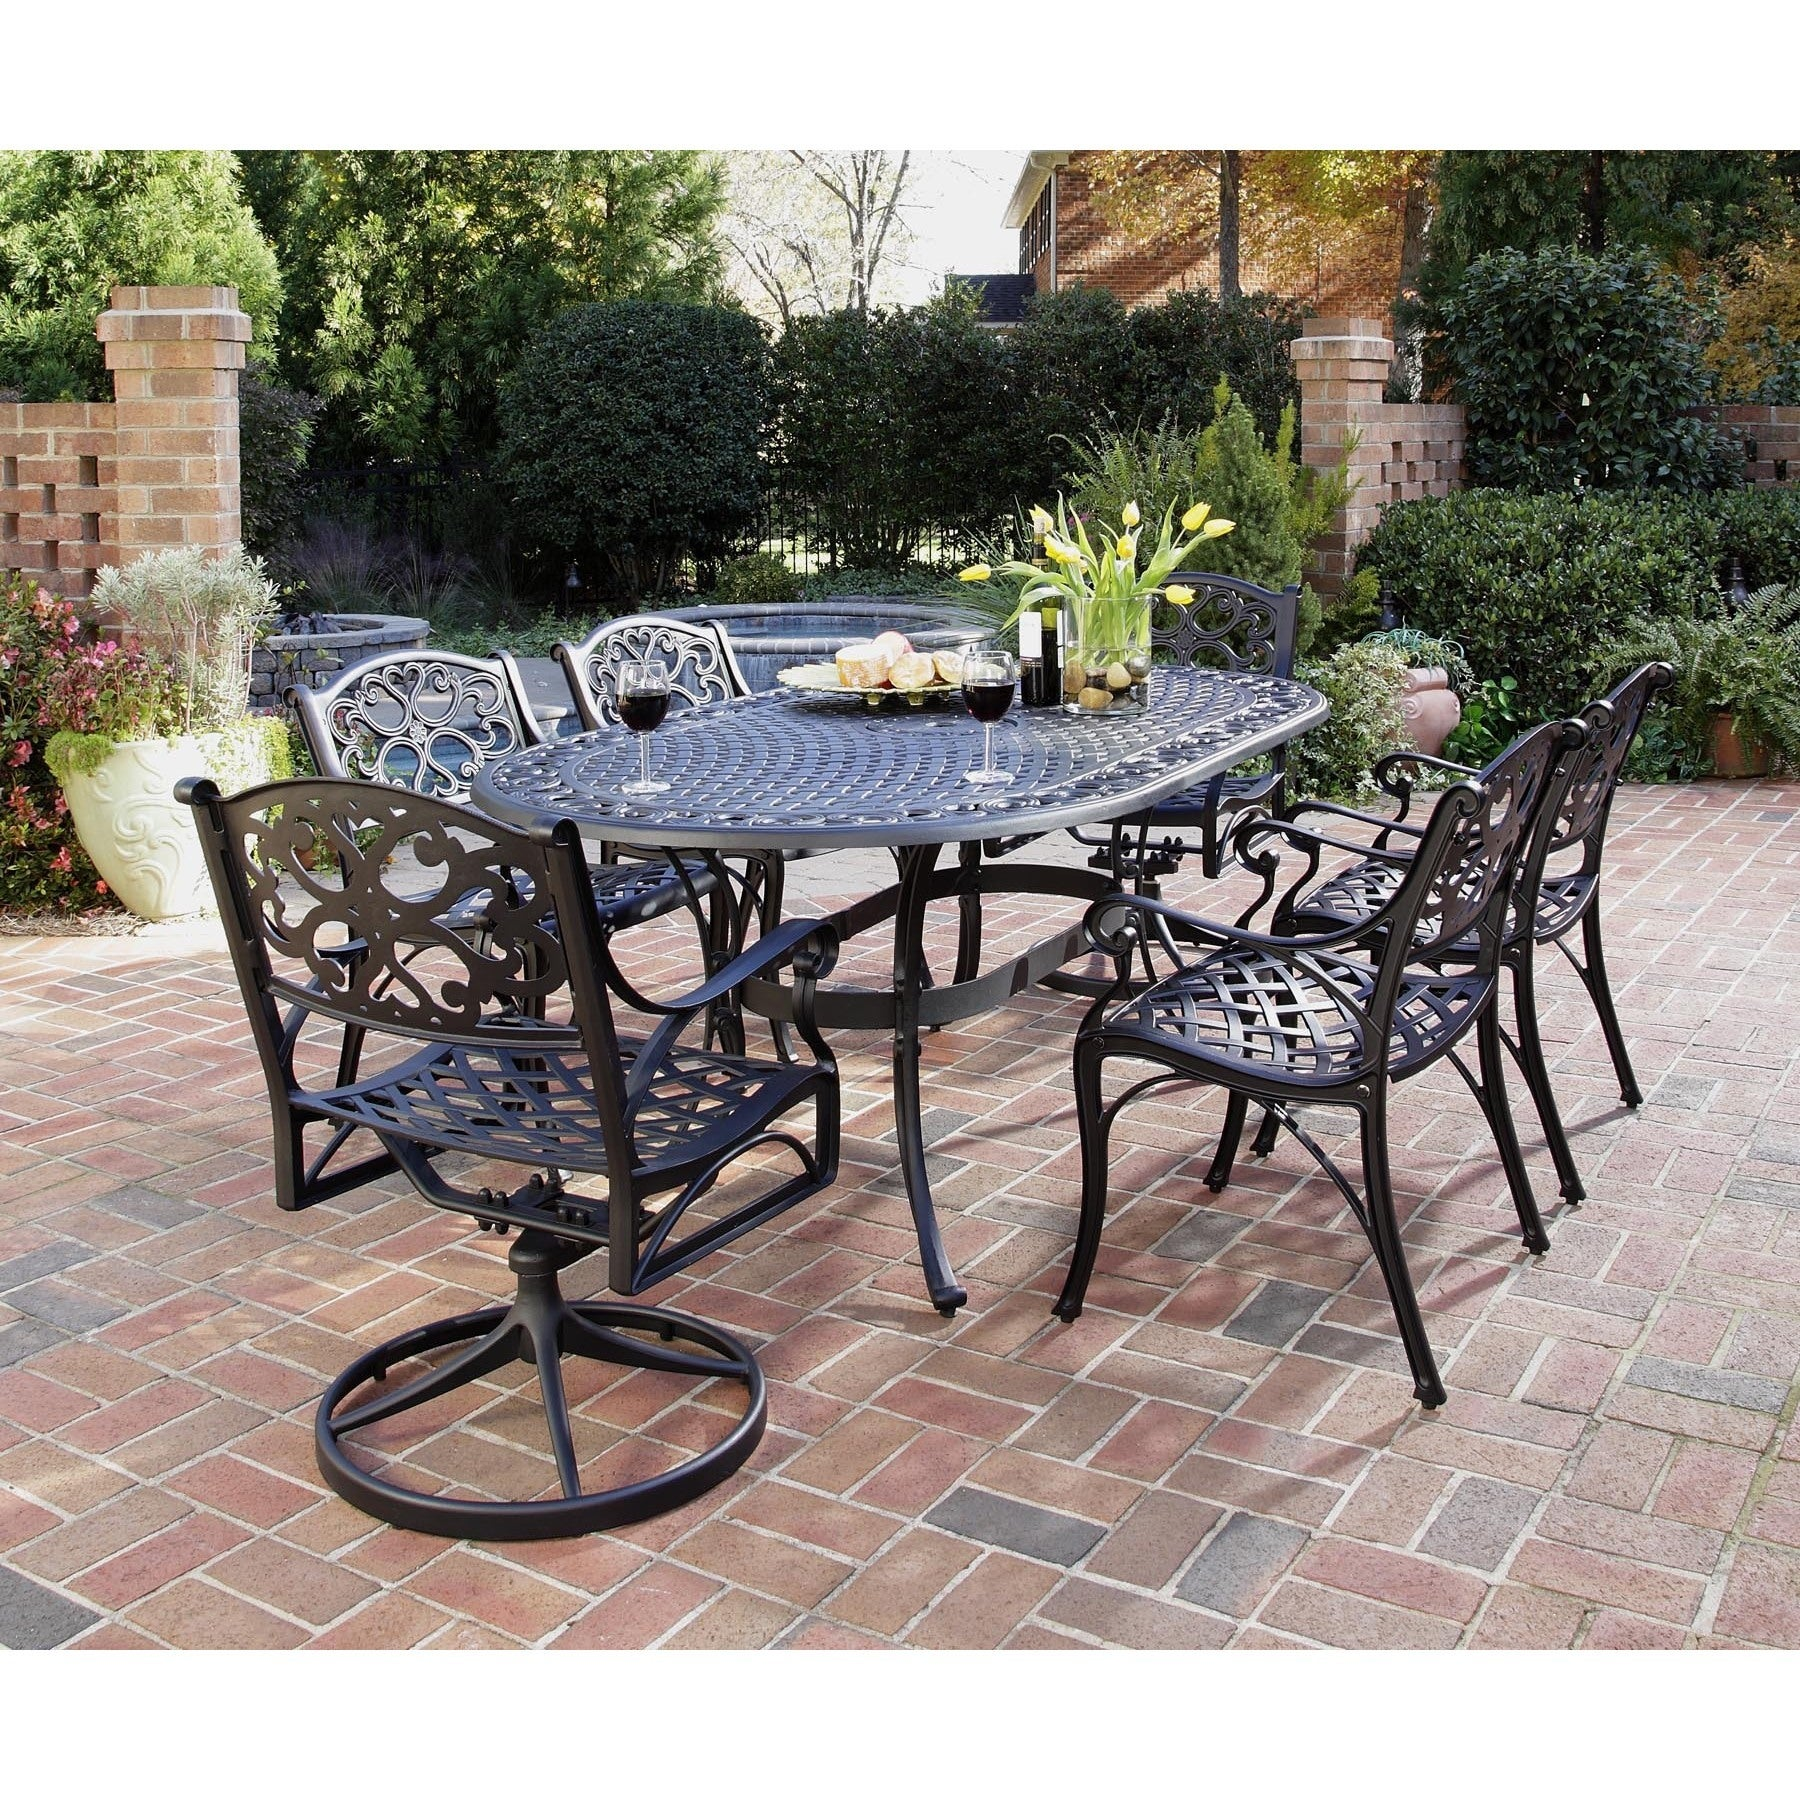 Biscayne 7 piece Dining Set 72 Oval Table with Two Swivel Chairs